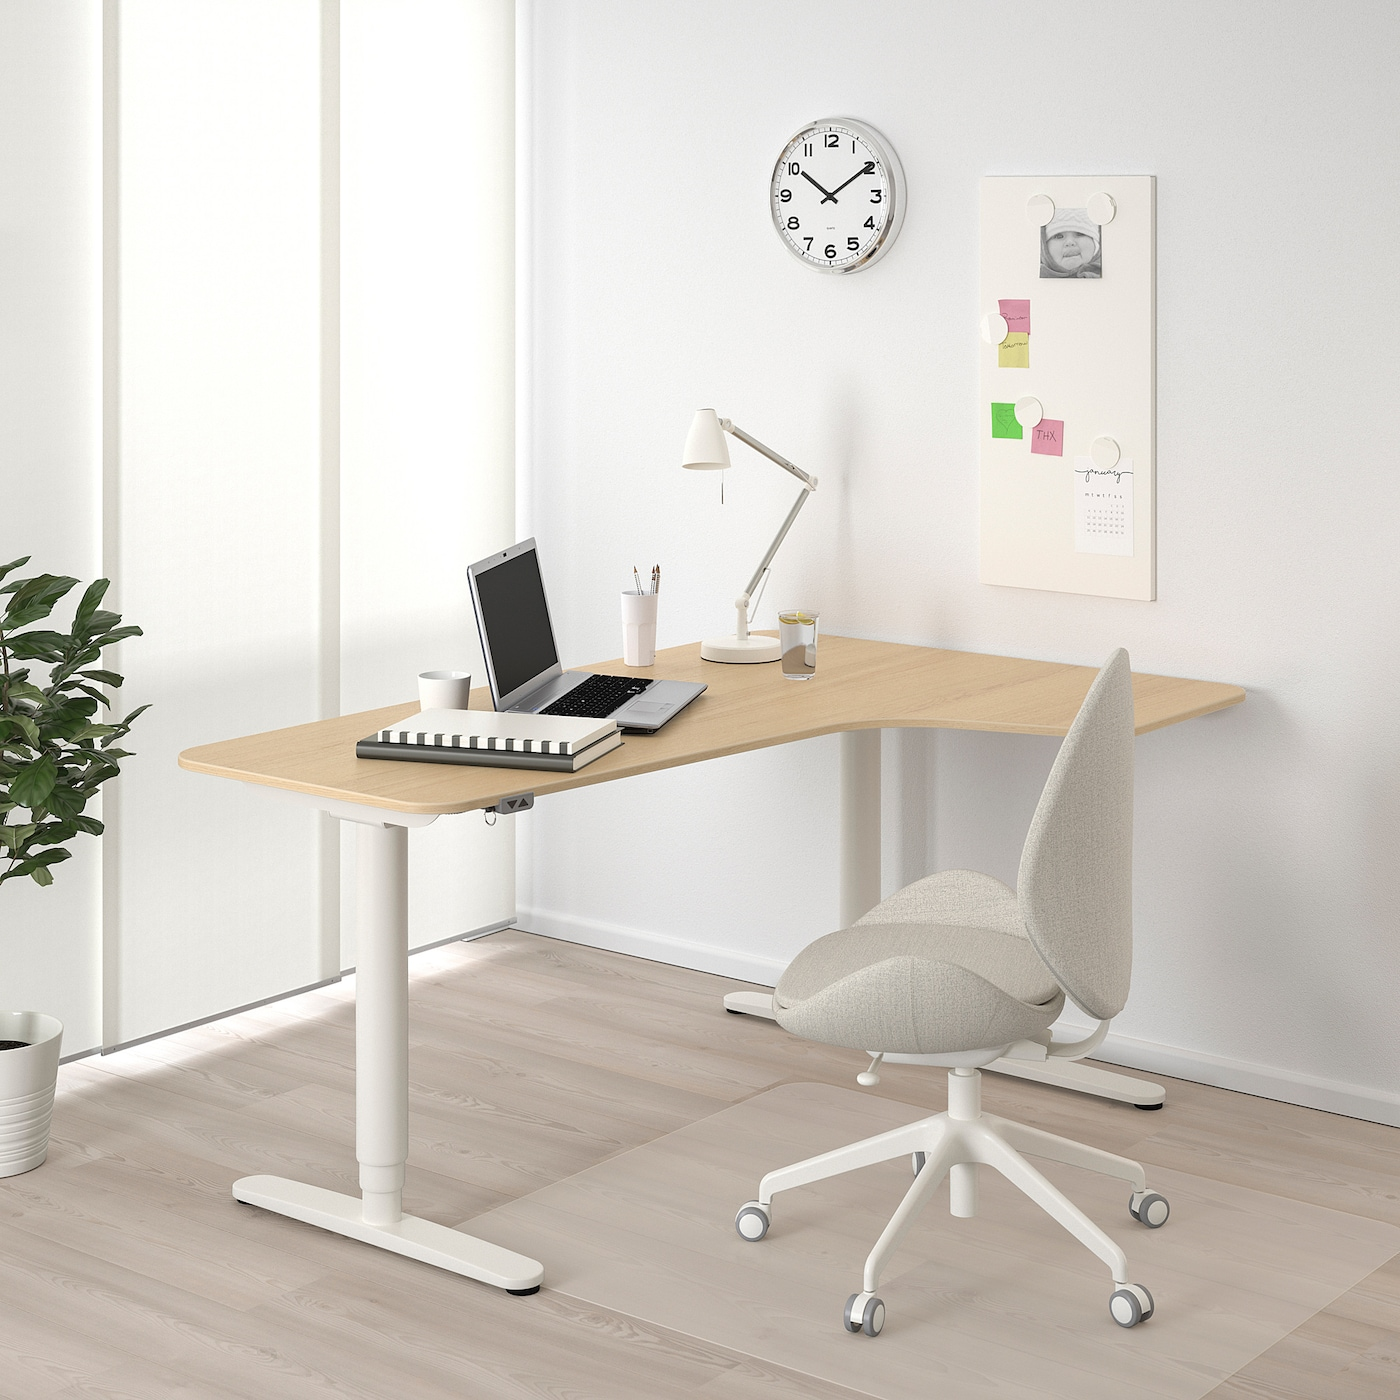 BEKANT Corner desk right sit/stand, white stained oak veneer white, 160x110 cm